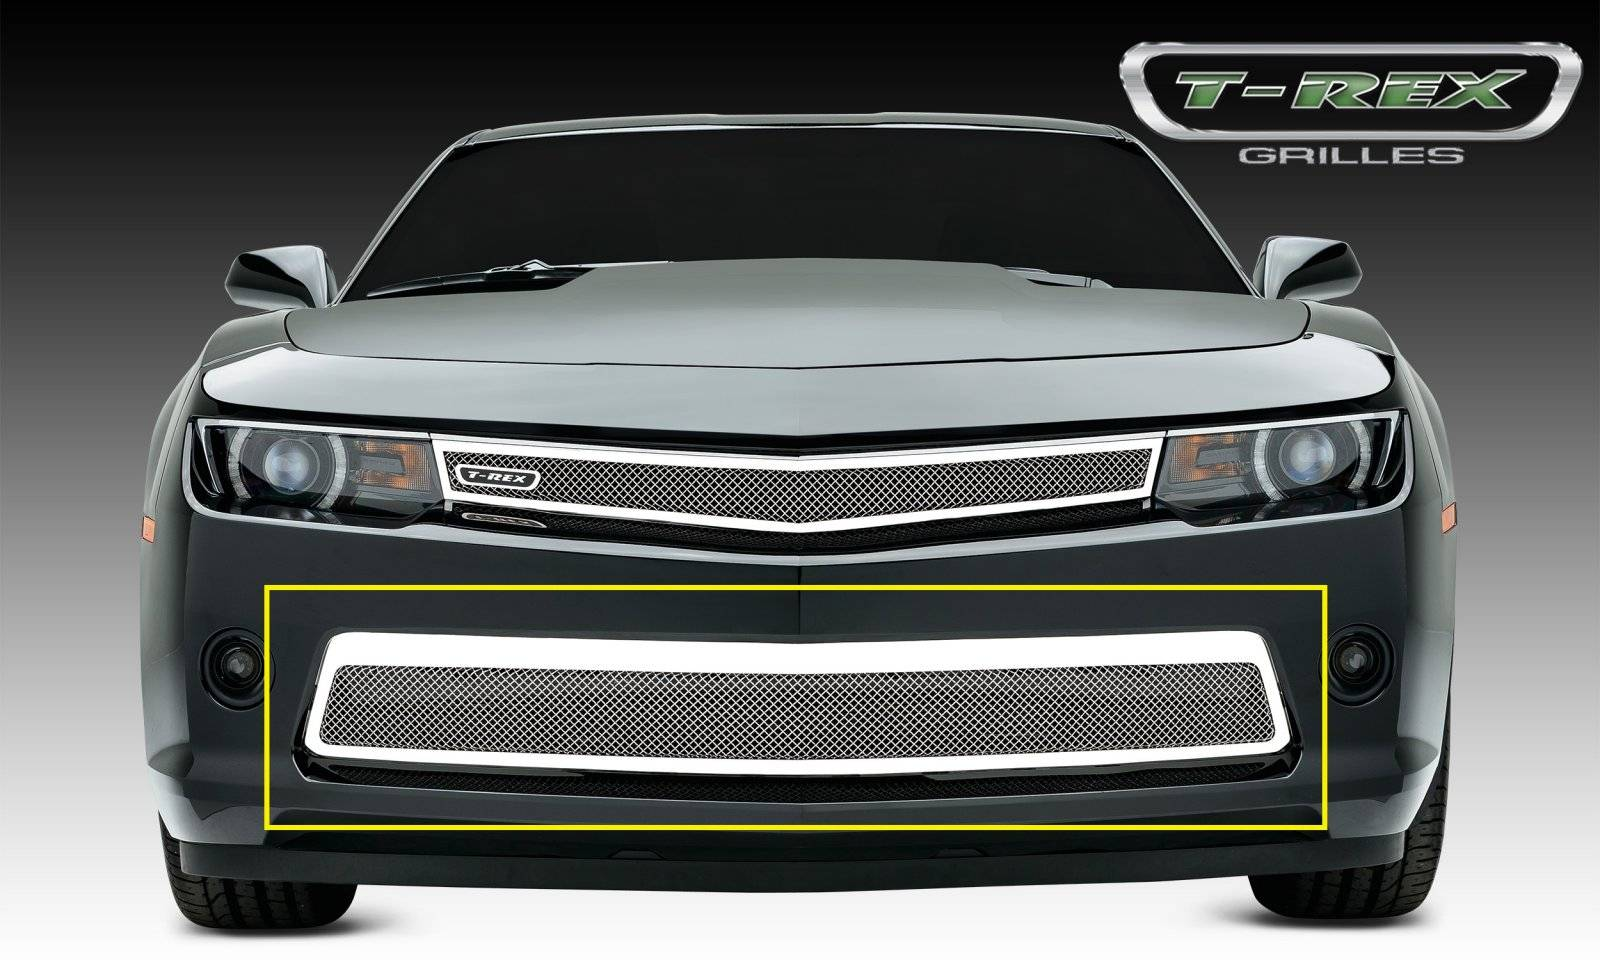 Chevrolet Camaro RS Upper Class, Formed Mesh, Bumper Grille, Replacement, 1 Pc, Polished Stainless Steel - Pt # 55032